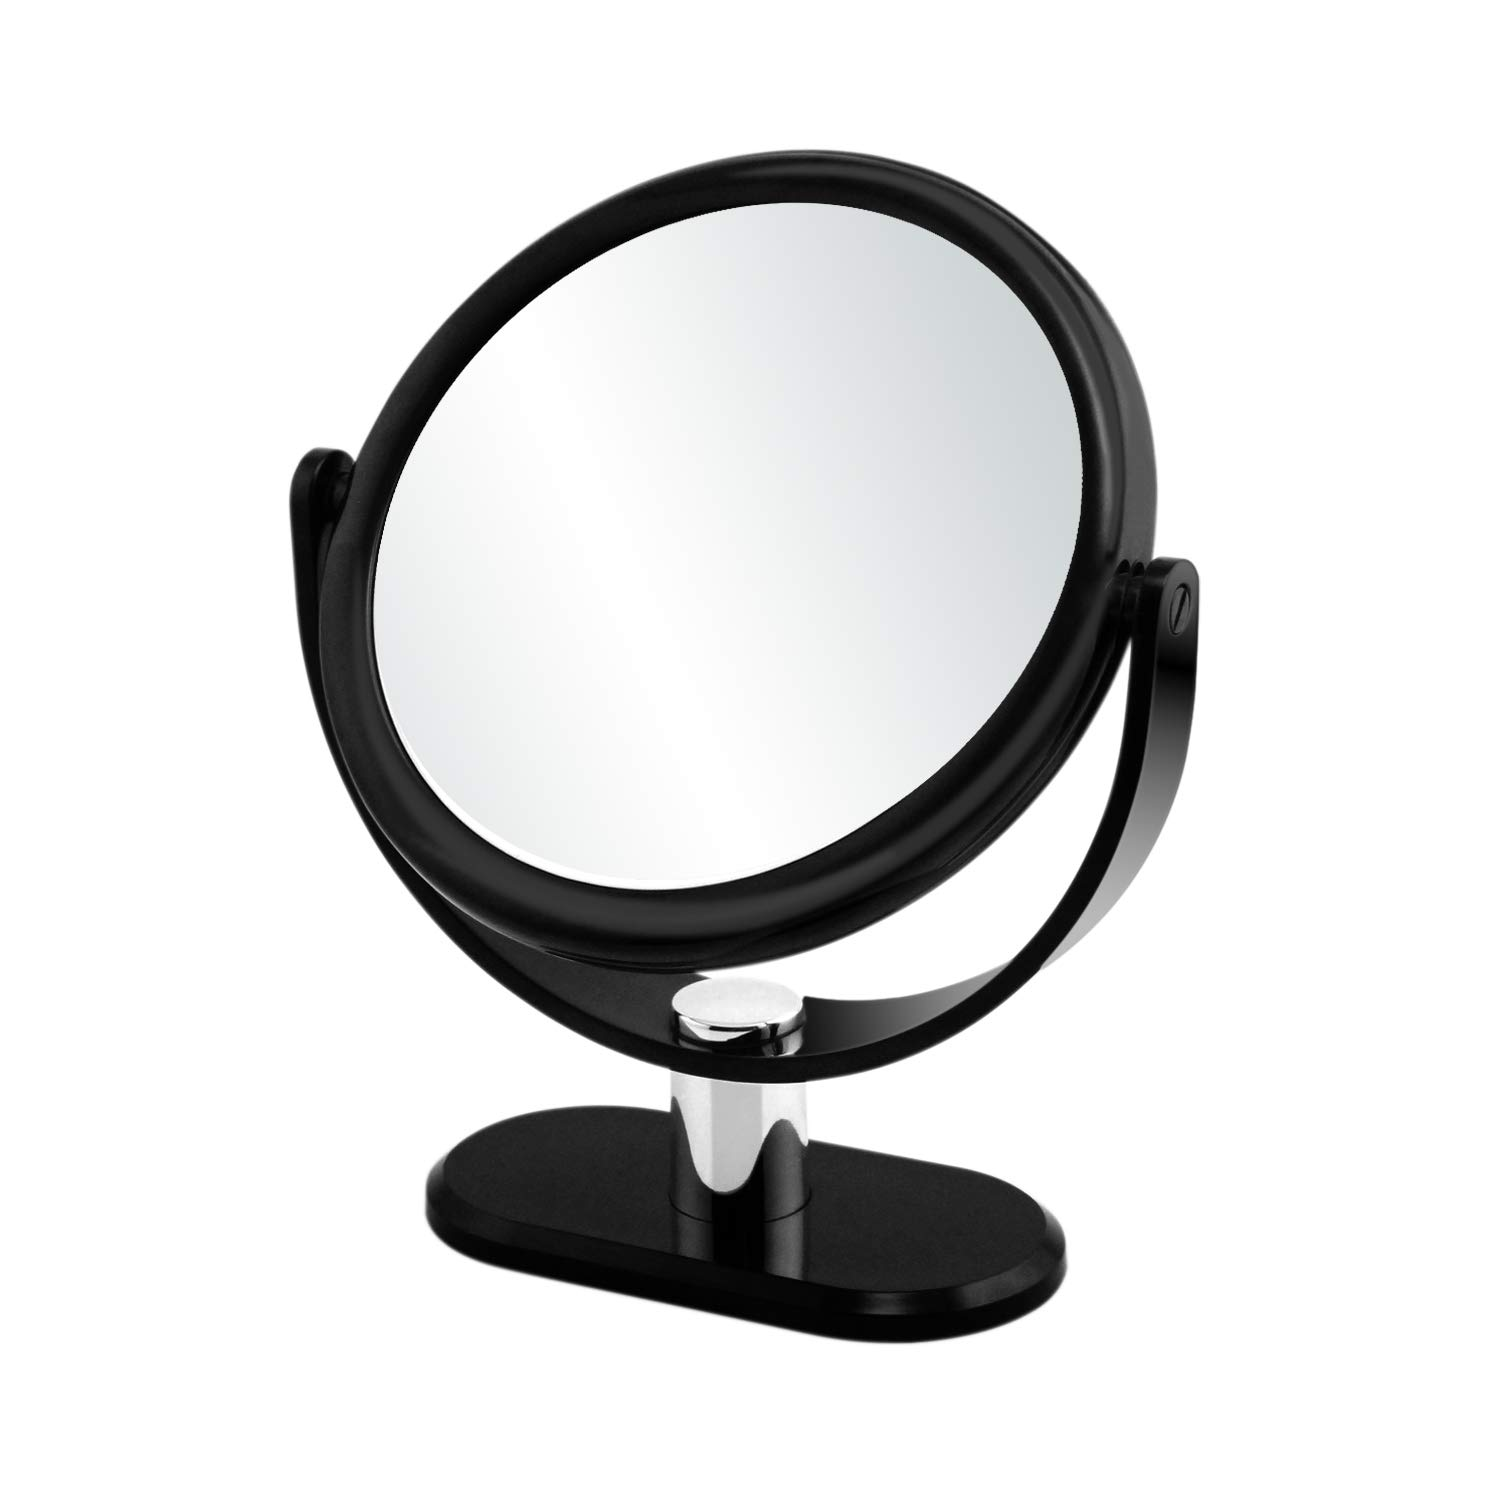 GORWRICH Makeup Mirror, Double Sided Vanity Mirror with 1x/7x, Tabletop Magnifying Mirror, 360 Degree Rotation, Cosmetic Mirror for Home & Bathroom Shower (Black)